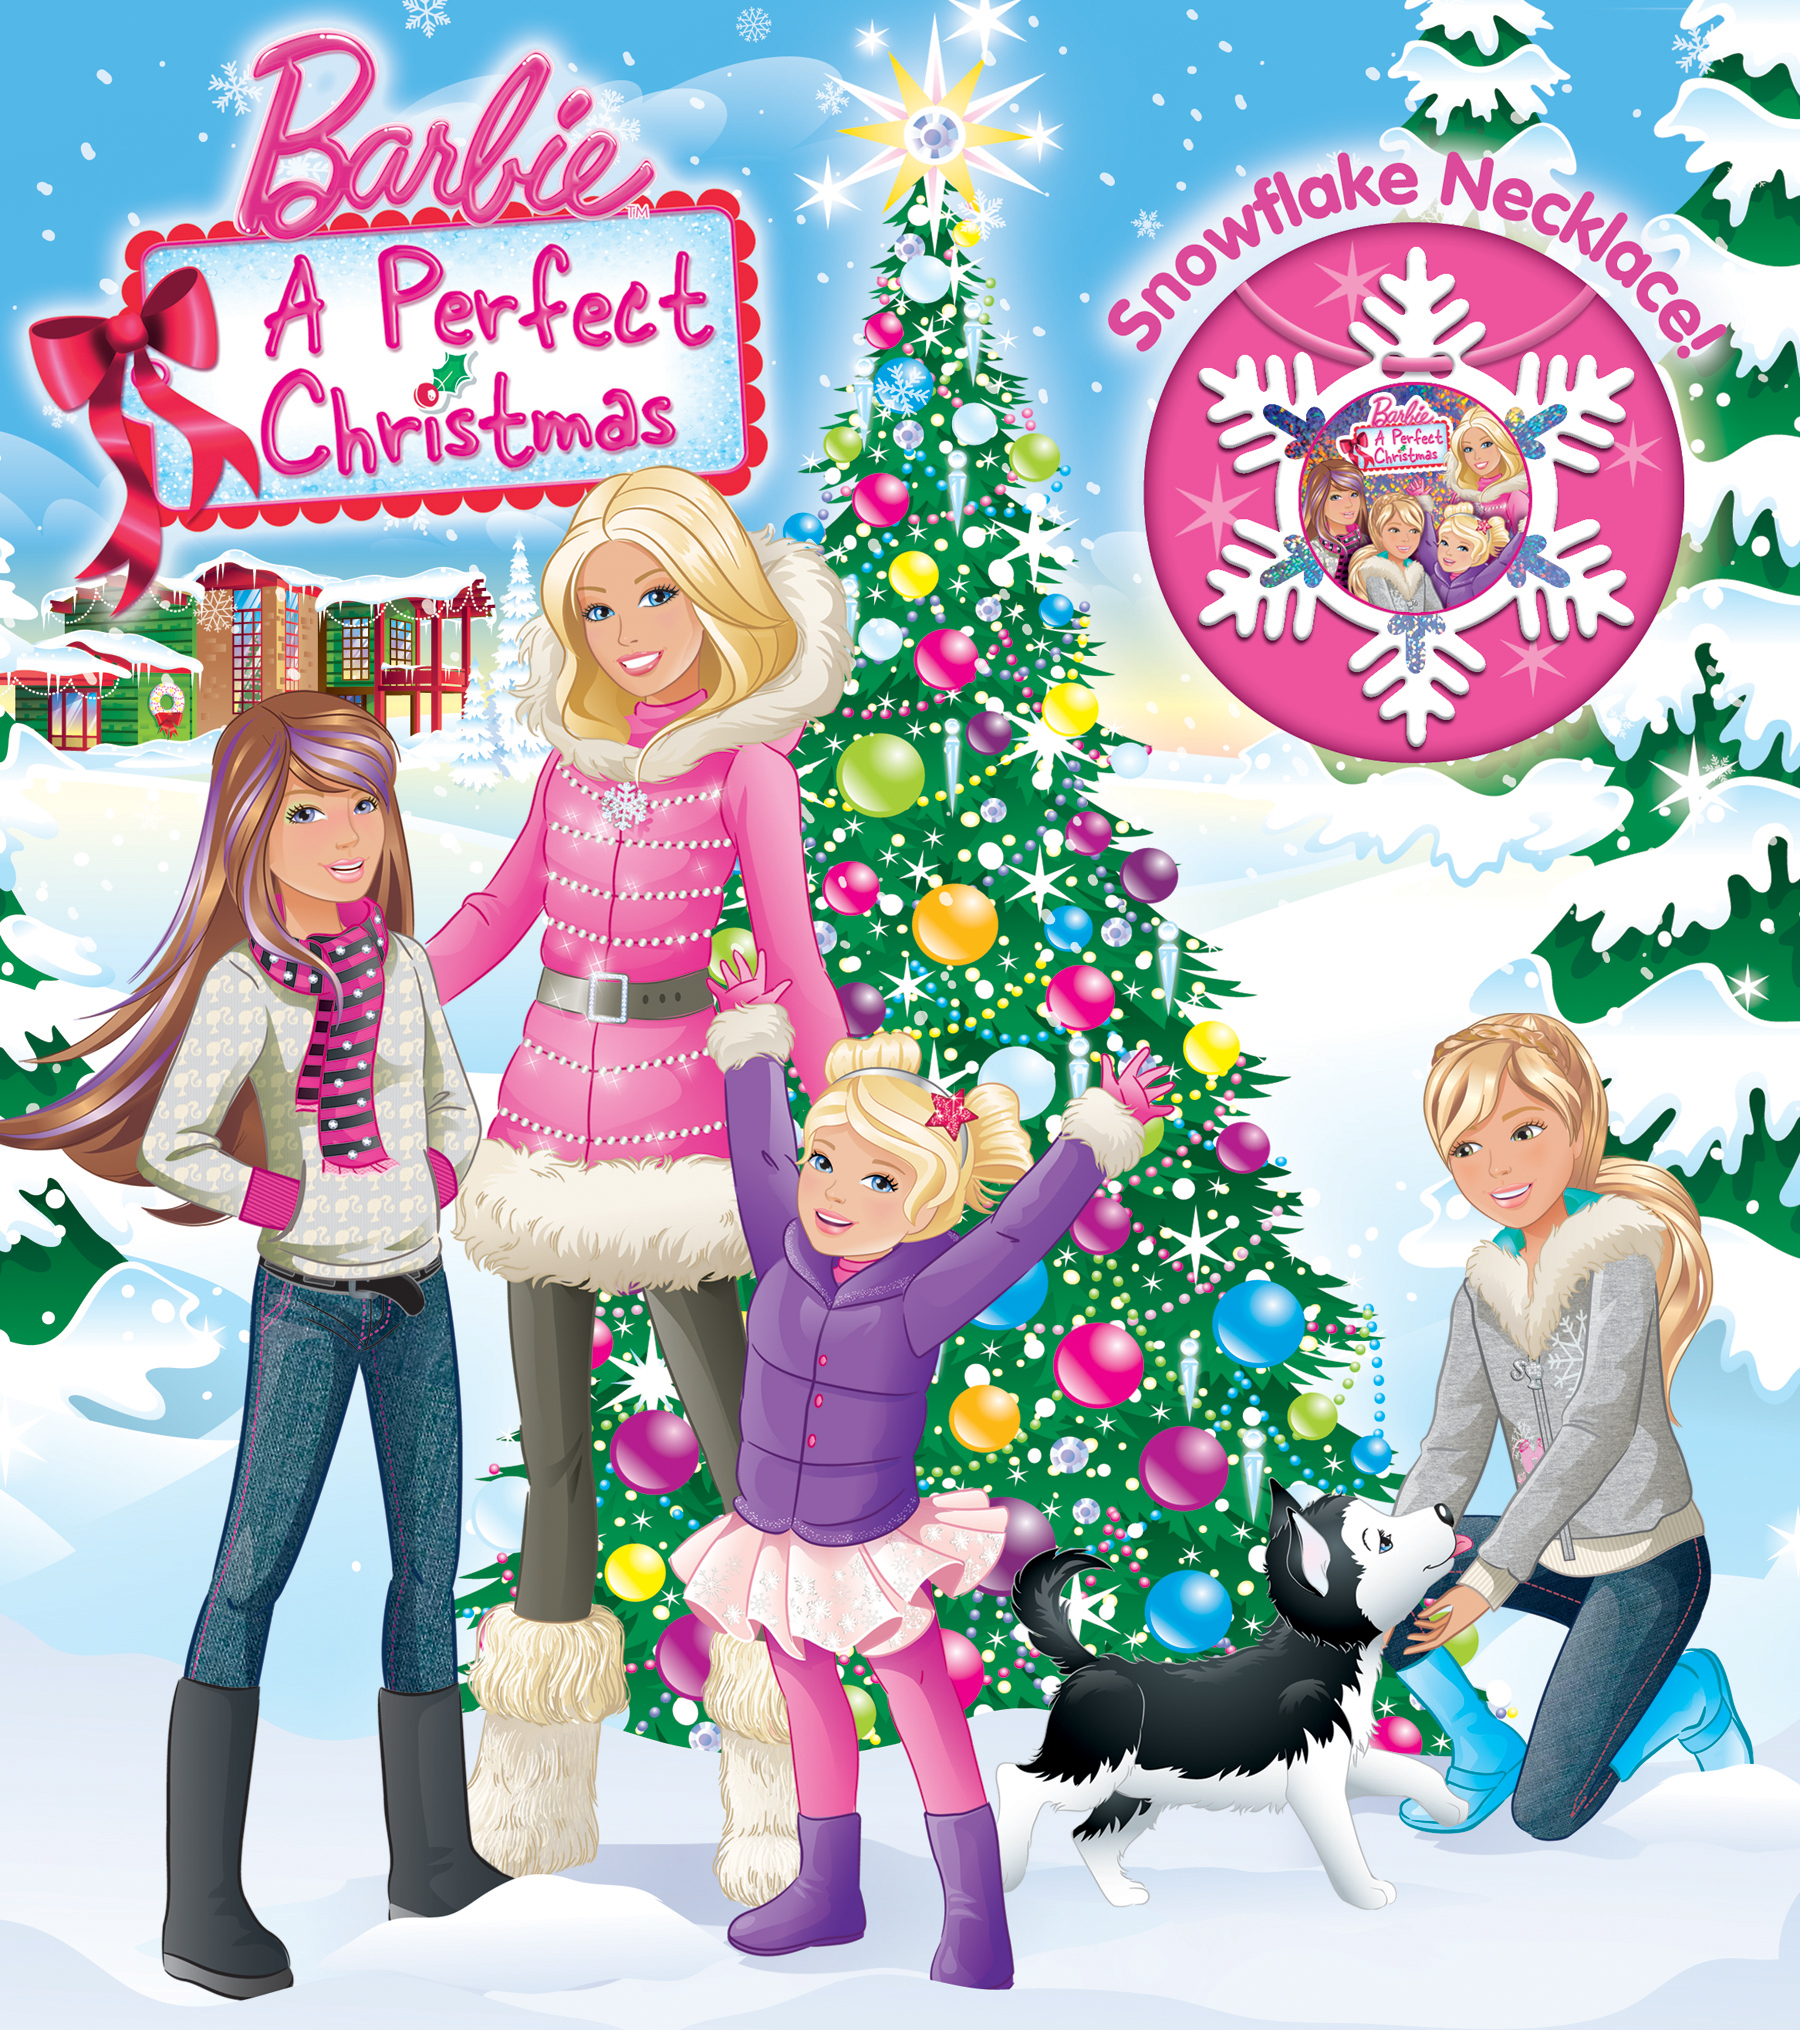 Barbie: A Perfect Christmas (Part of BOOK AND JEWELRY) Adapted Adapted by: Justine Fontes